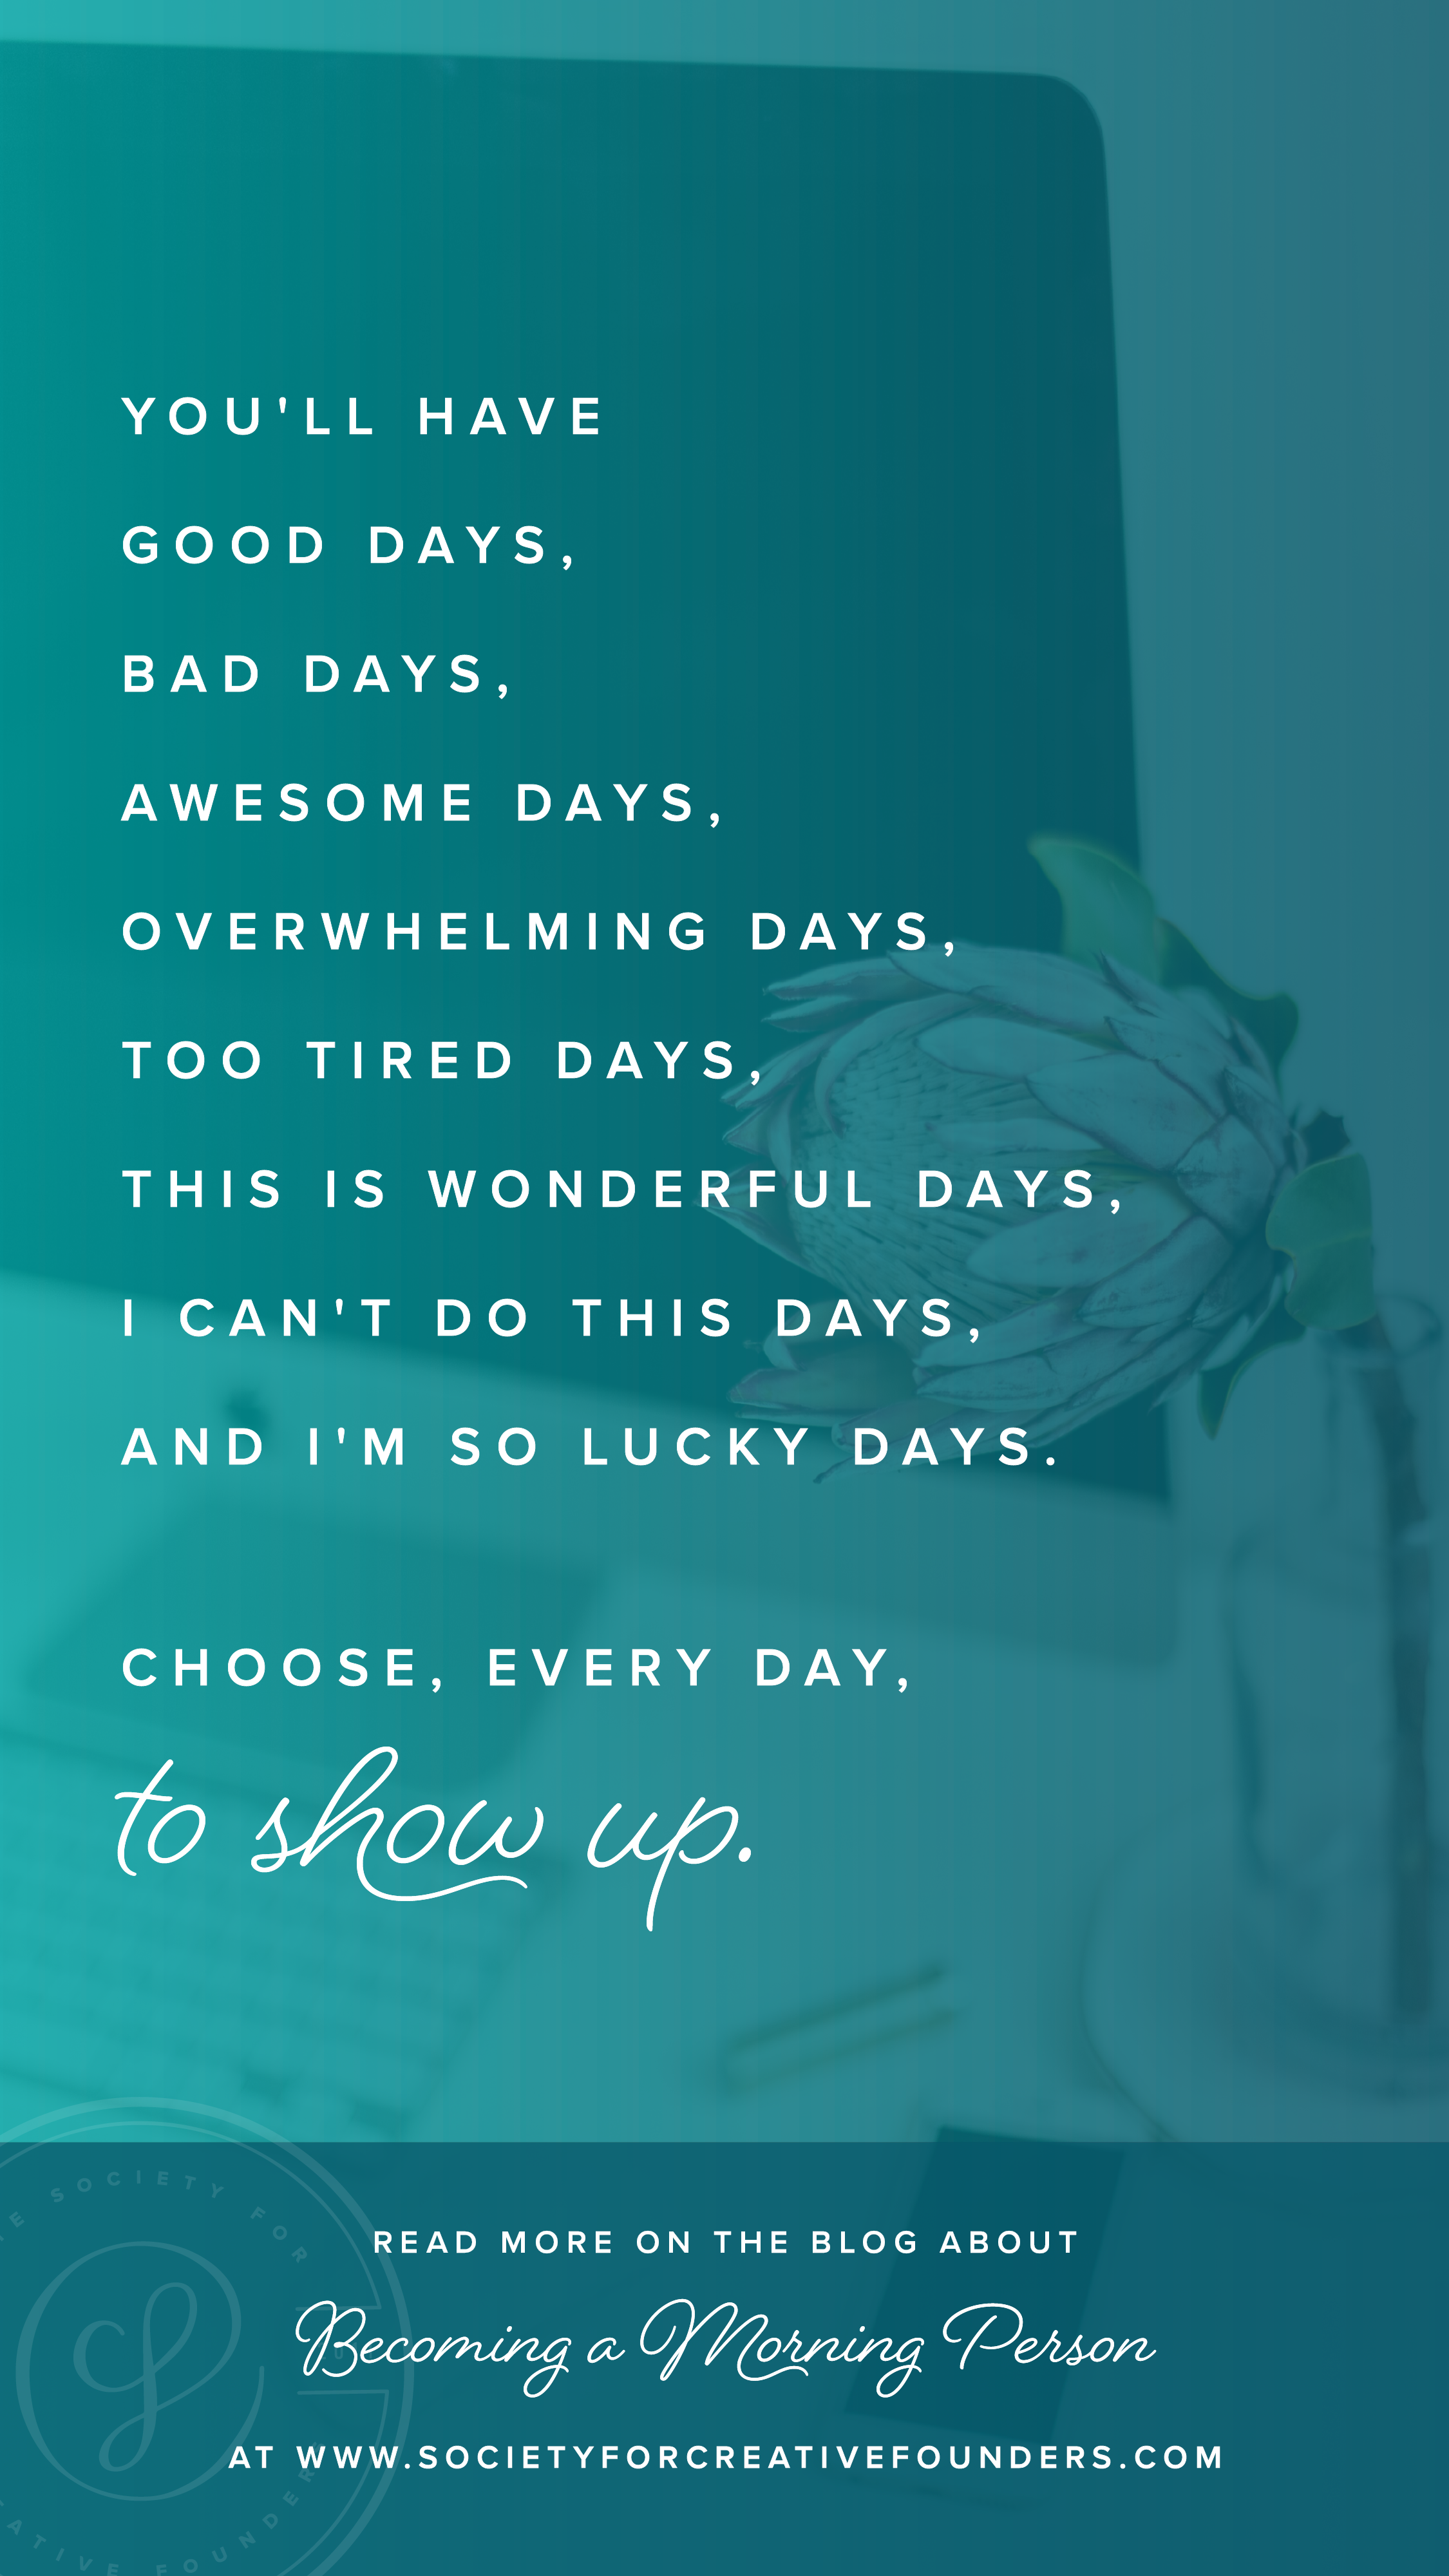 Entrepreneur Quote - you'll have good days, bad days, awesome days, overwhelming days.  Choose, every day, to show up.